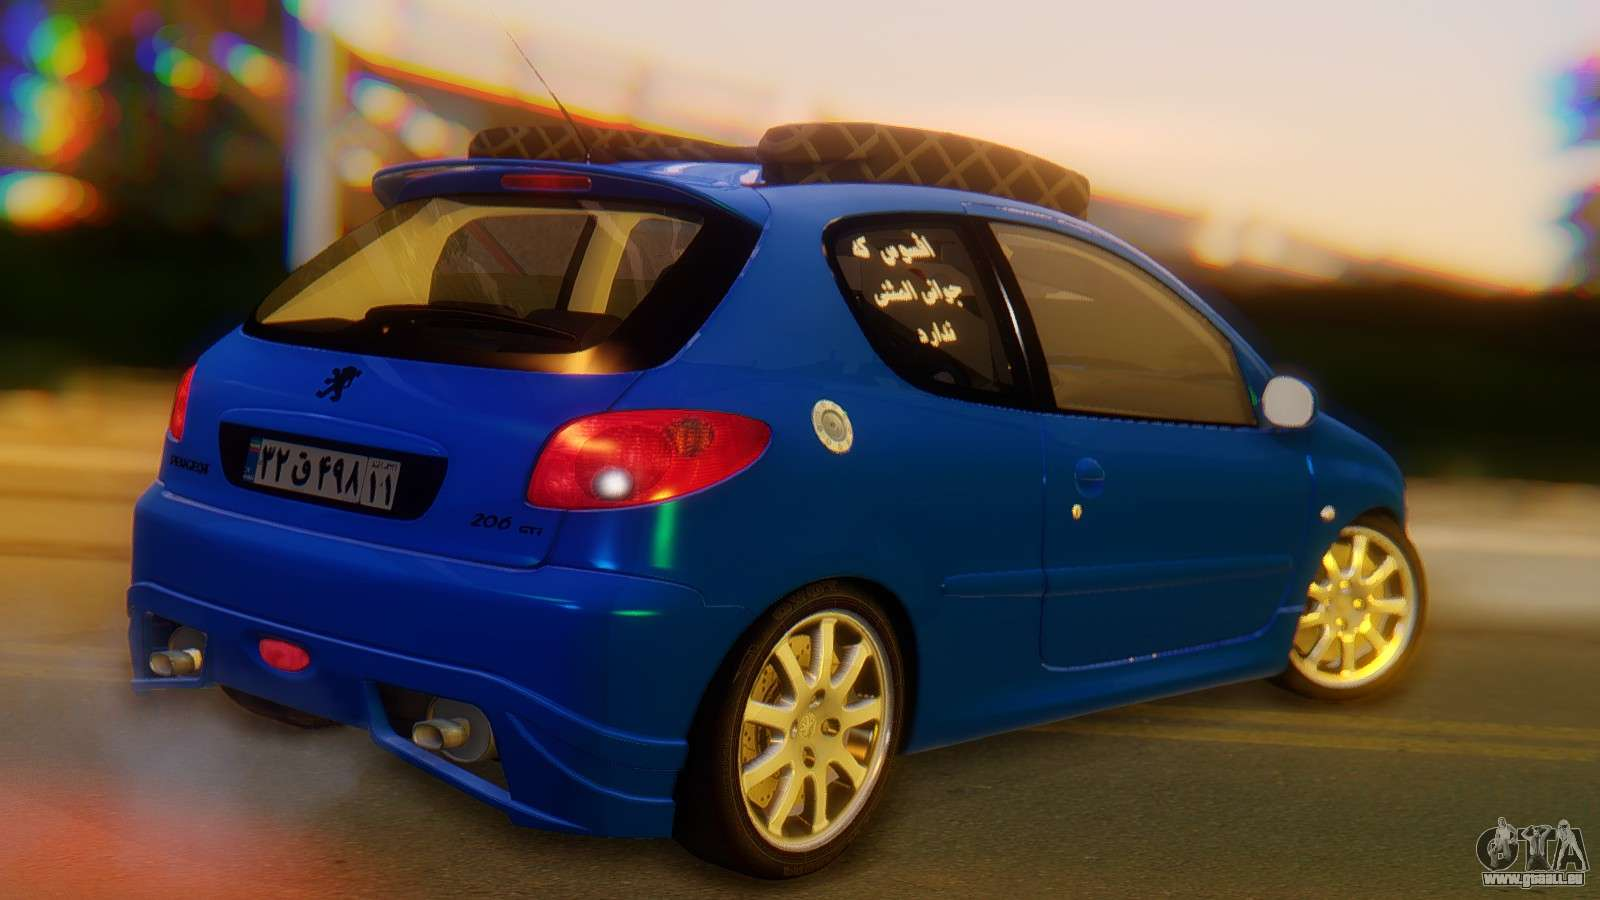 Peugeot 206 full tuning pour gta san andreas for Peugeot 206 tuning interieur